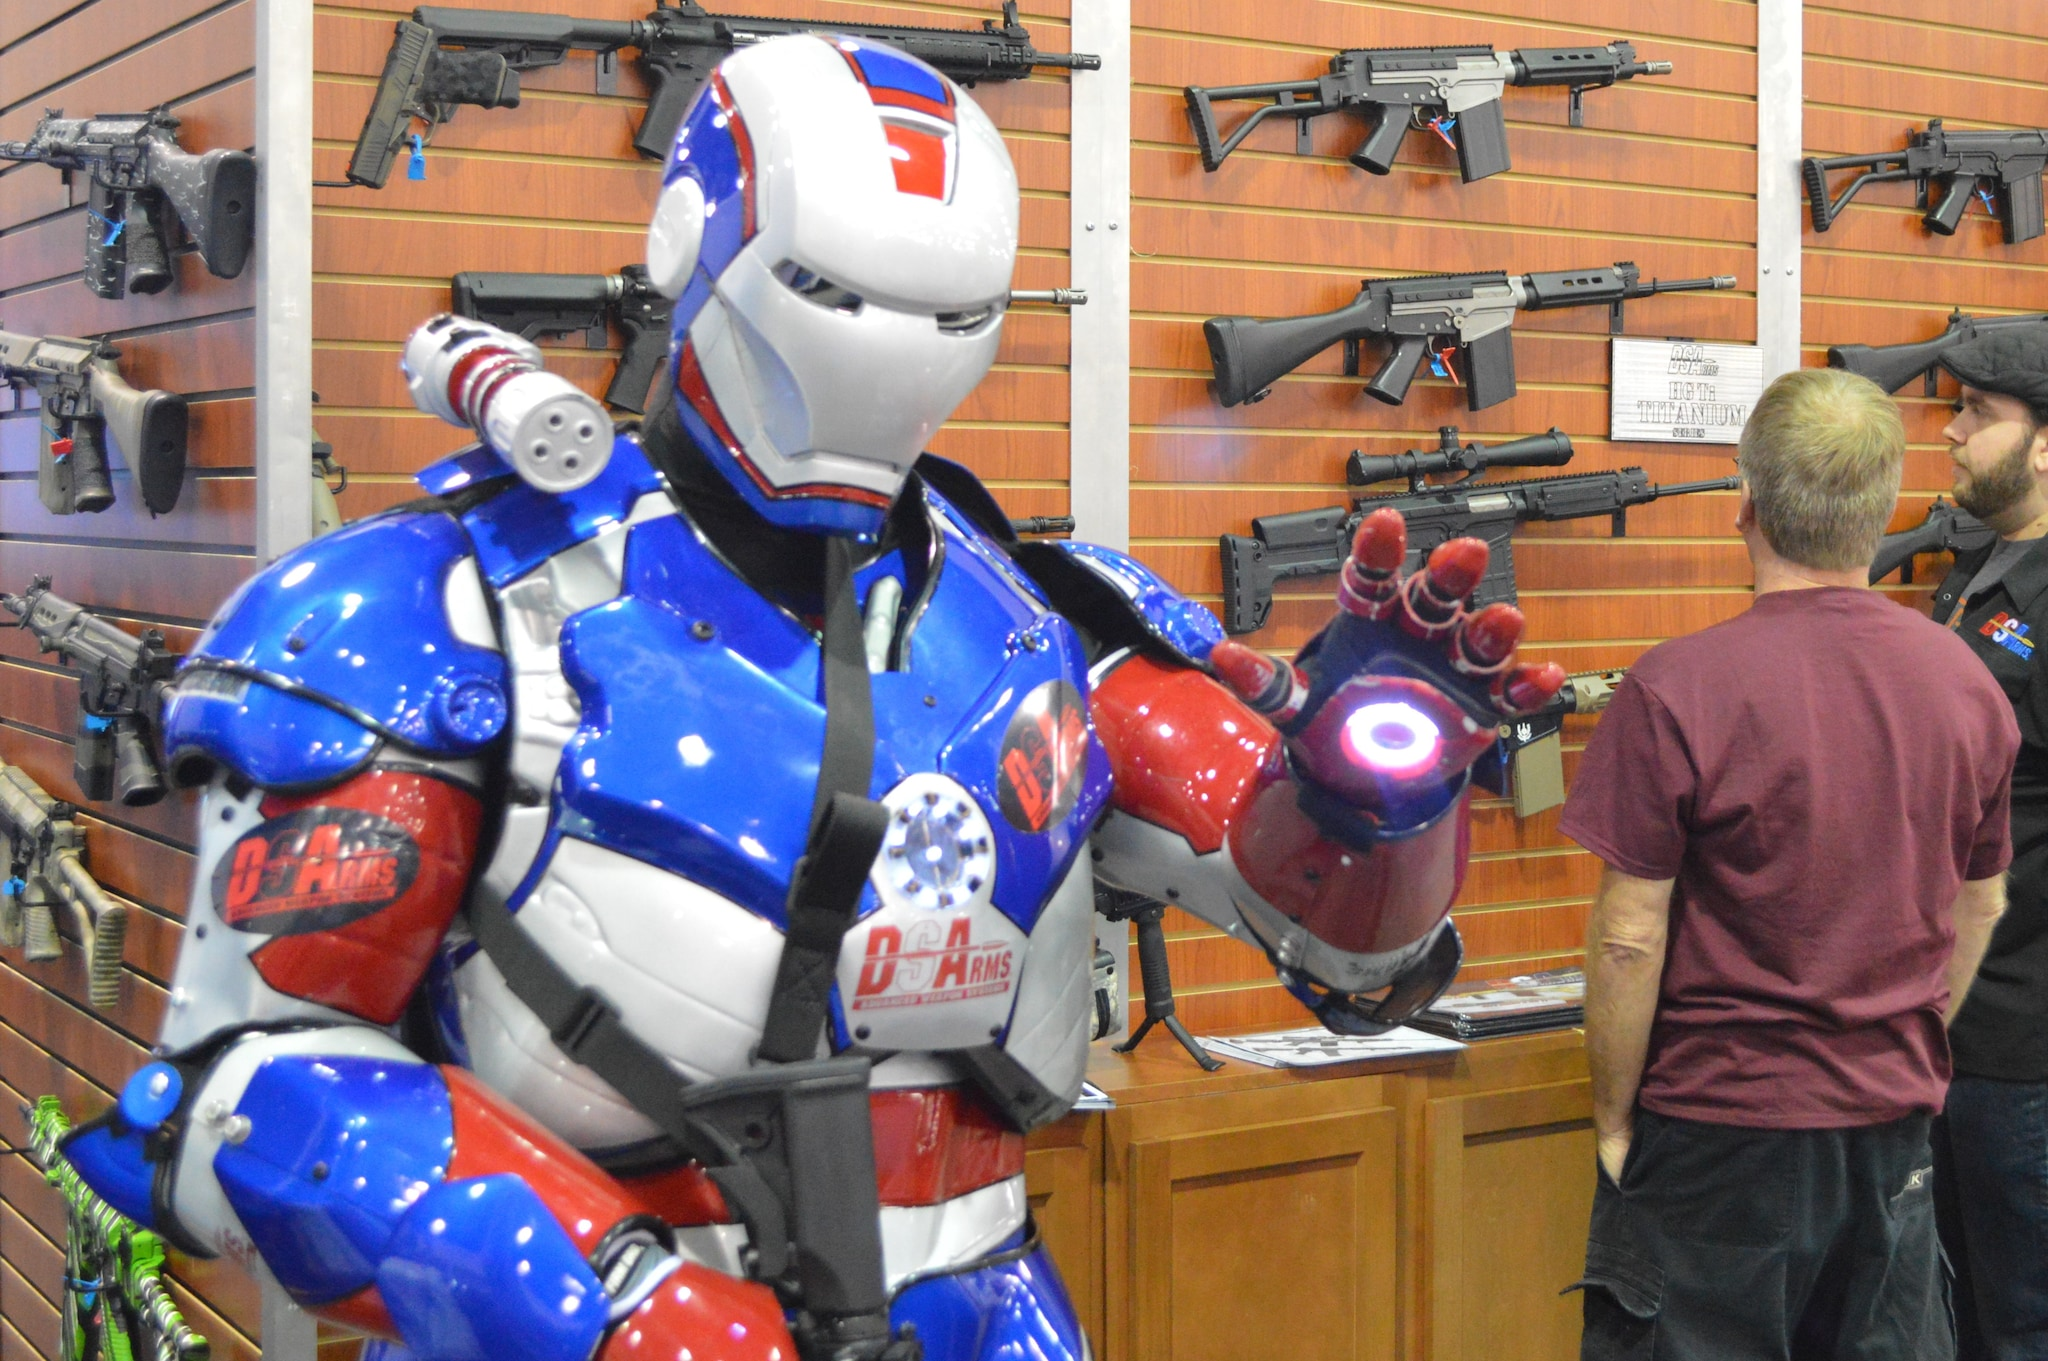 The patriotic, lighted-suit dude at DS Arms was an attention grabber at the company's booth. (Photo: Kristin Alberts/Guns.com)